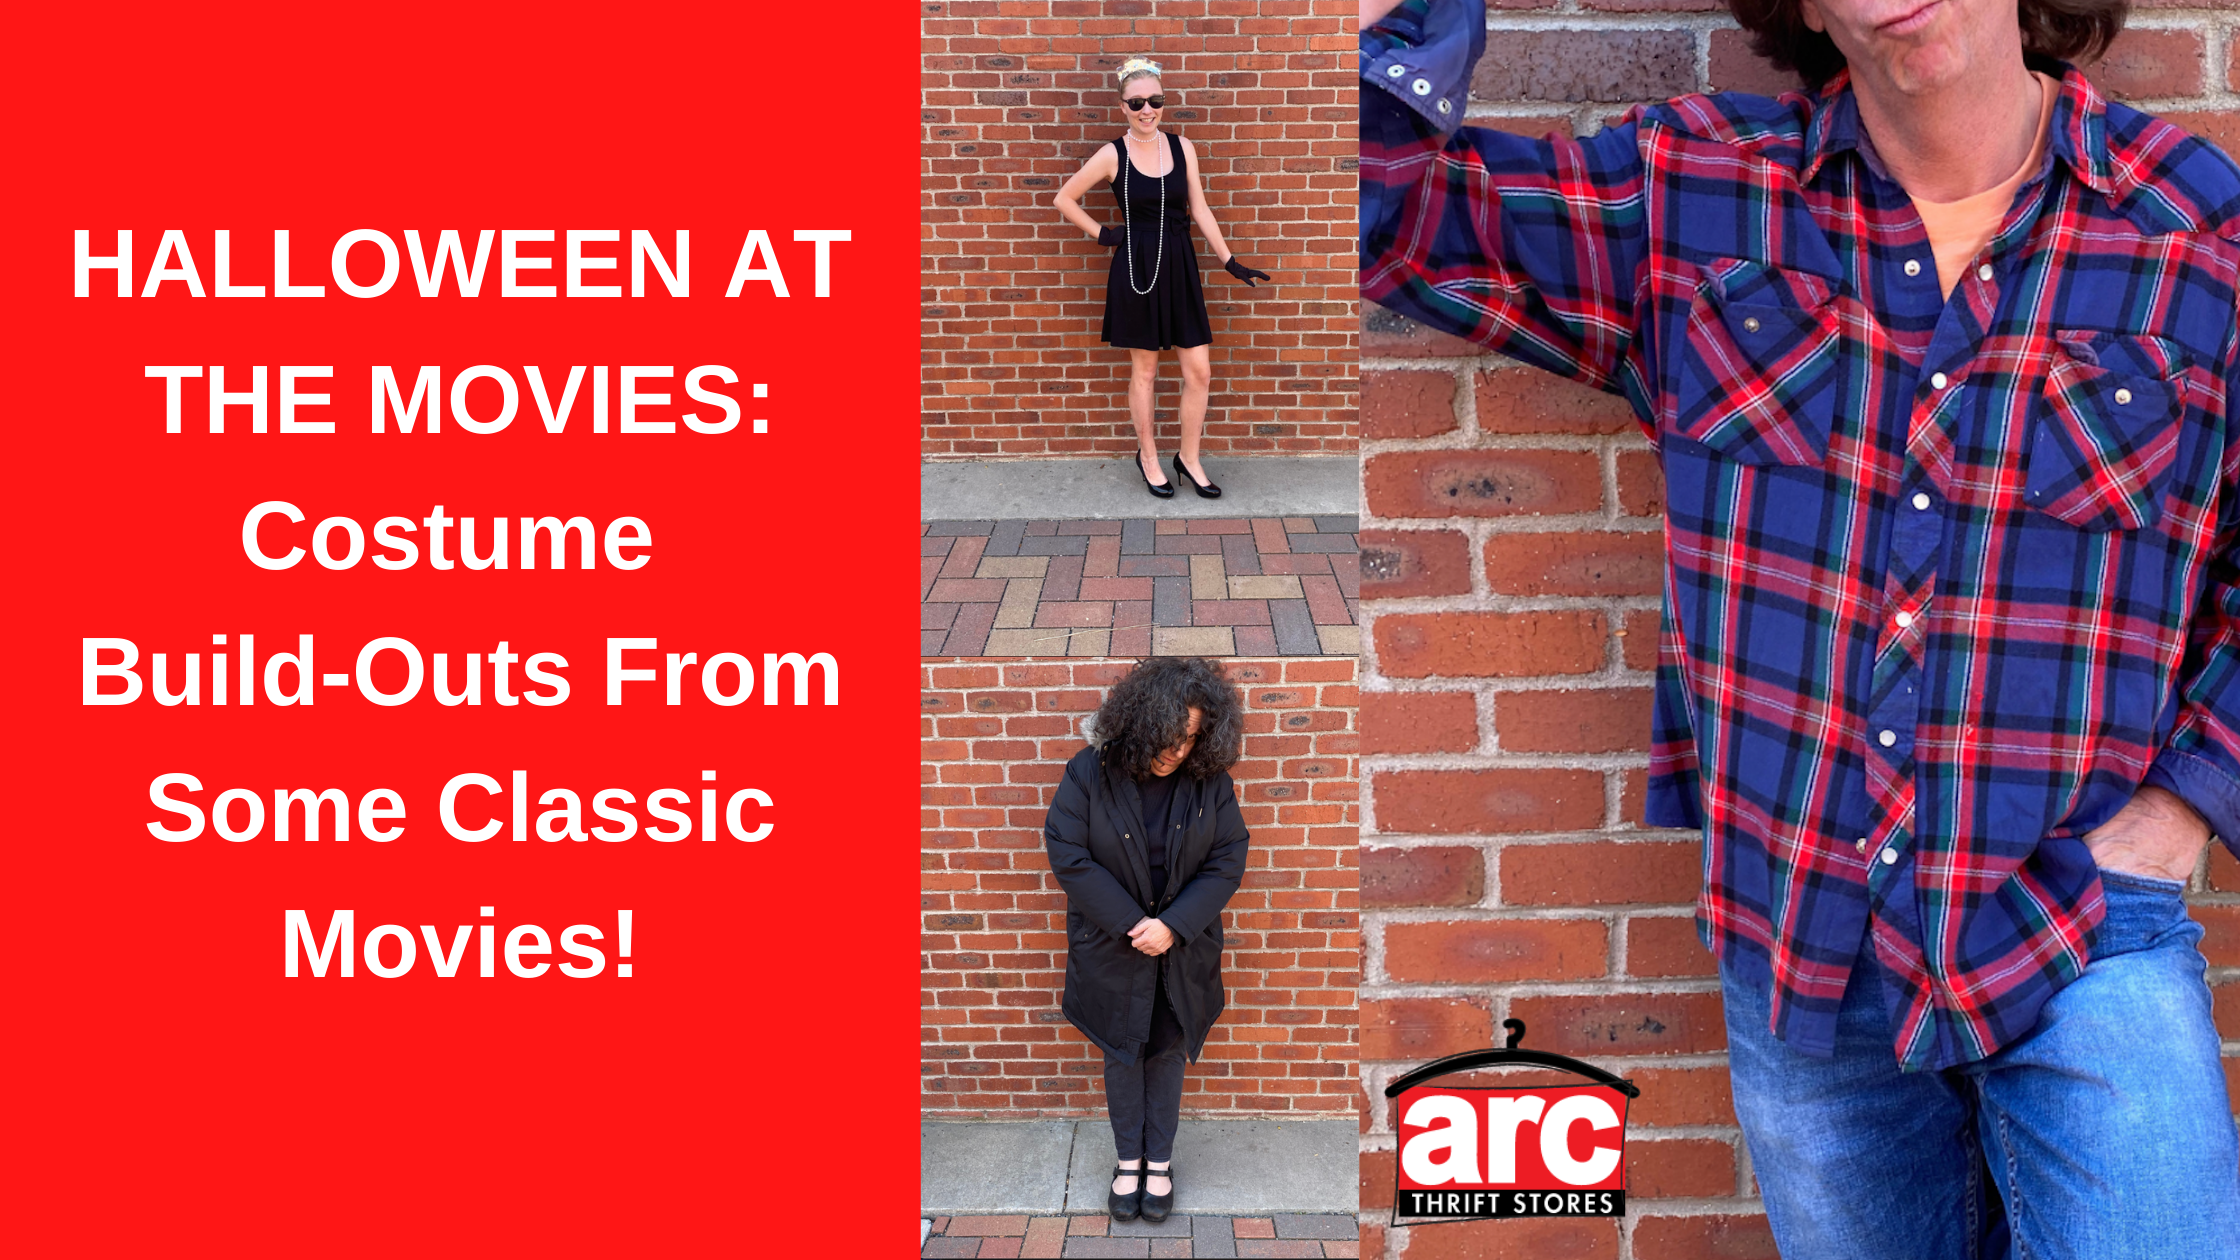 HALLOWEEN AT THE MOVIES: Costume Build-Outs From Some Classic Movies!